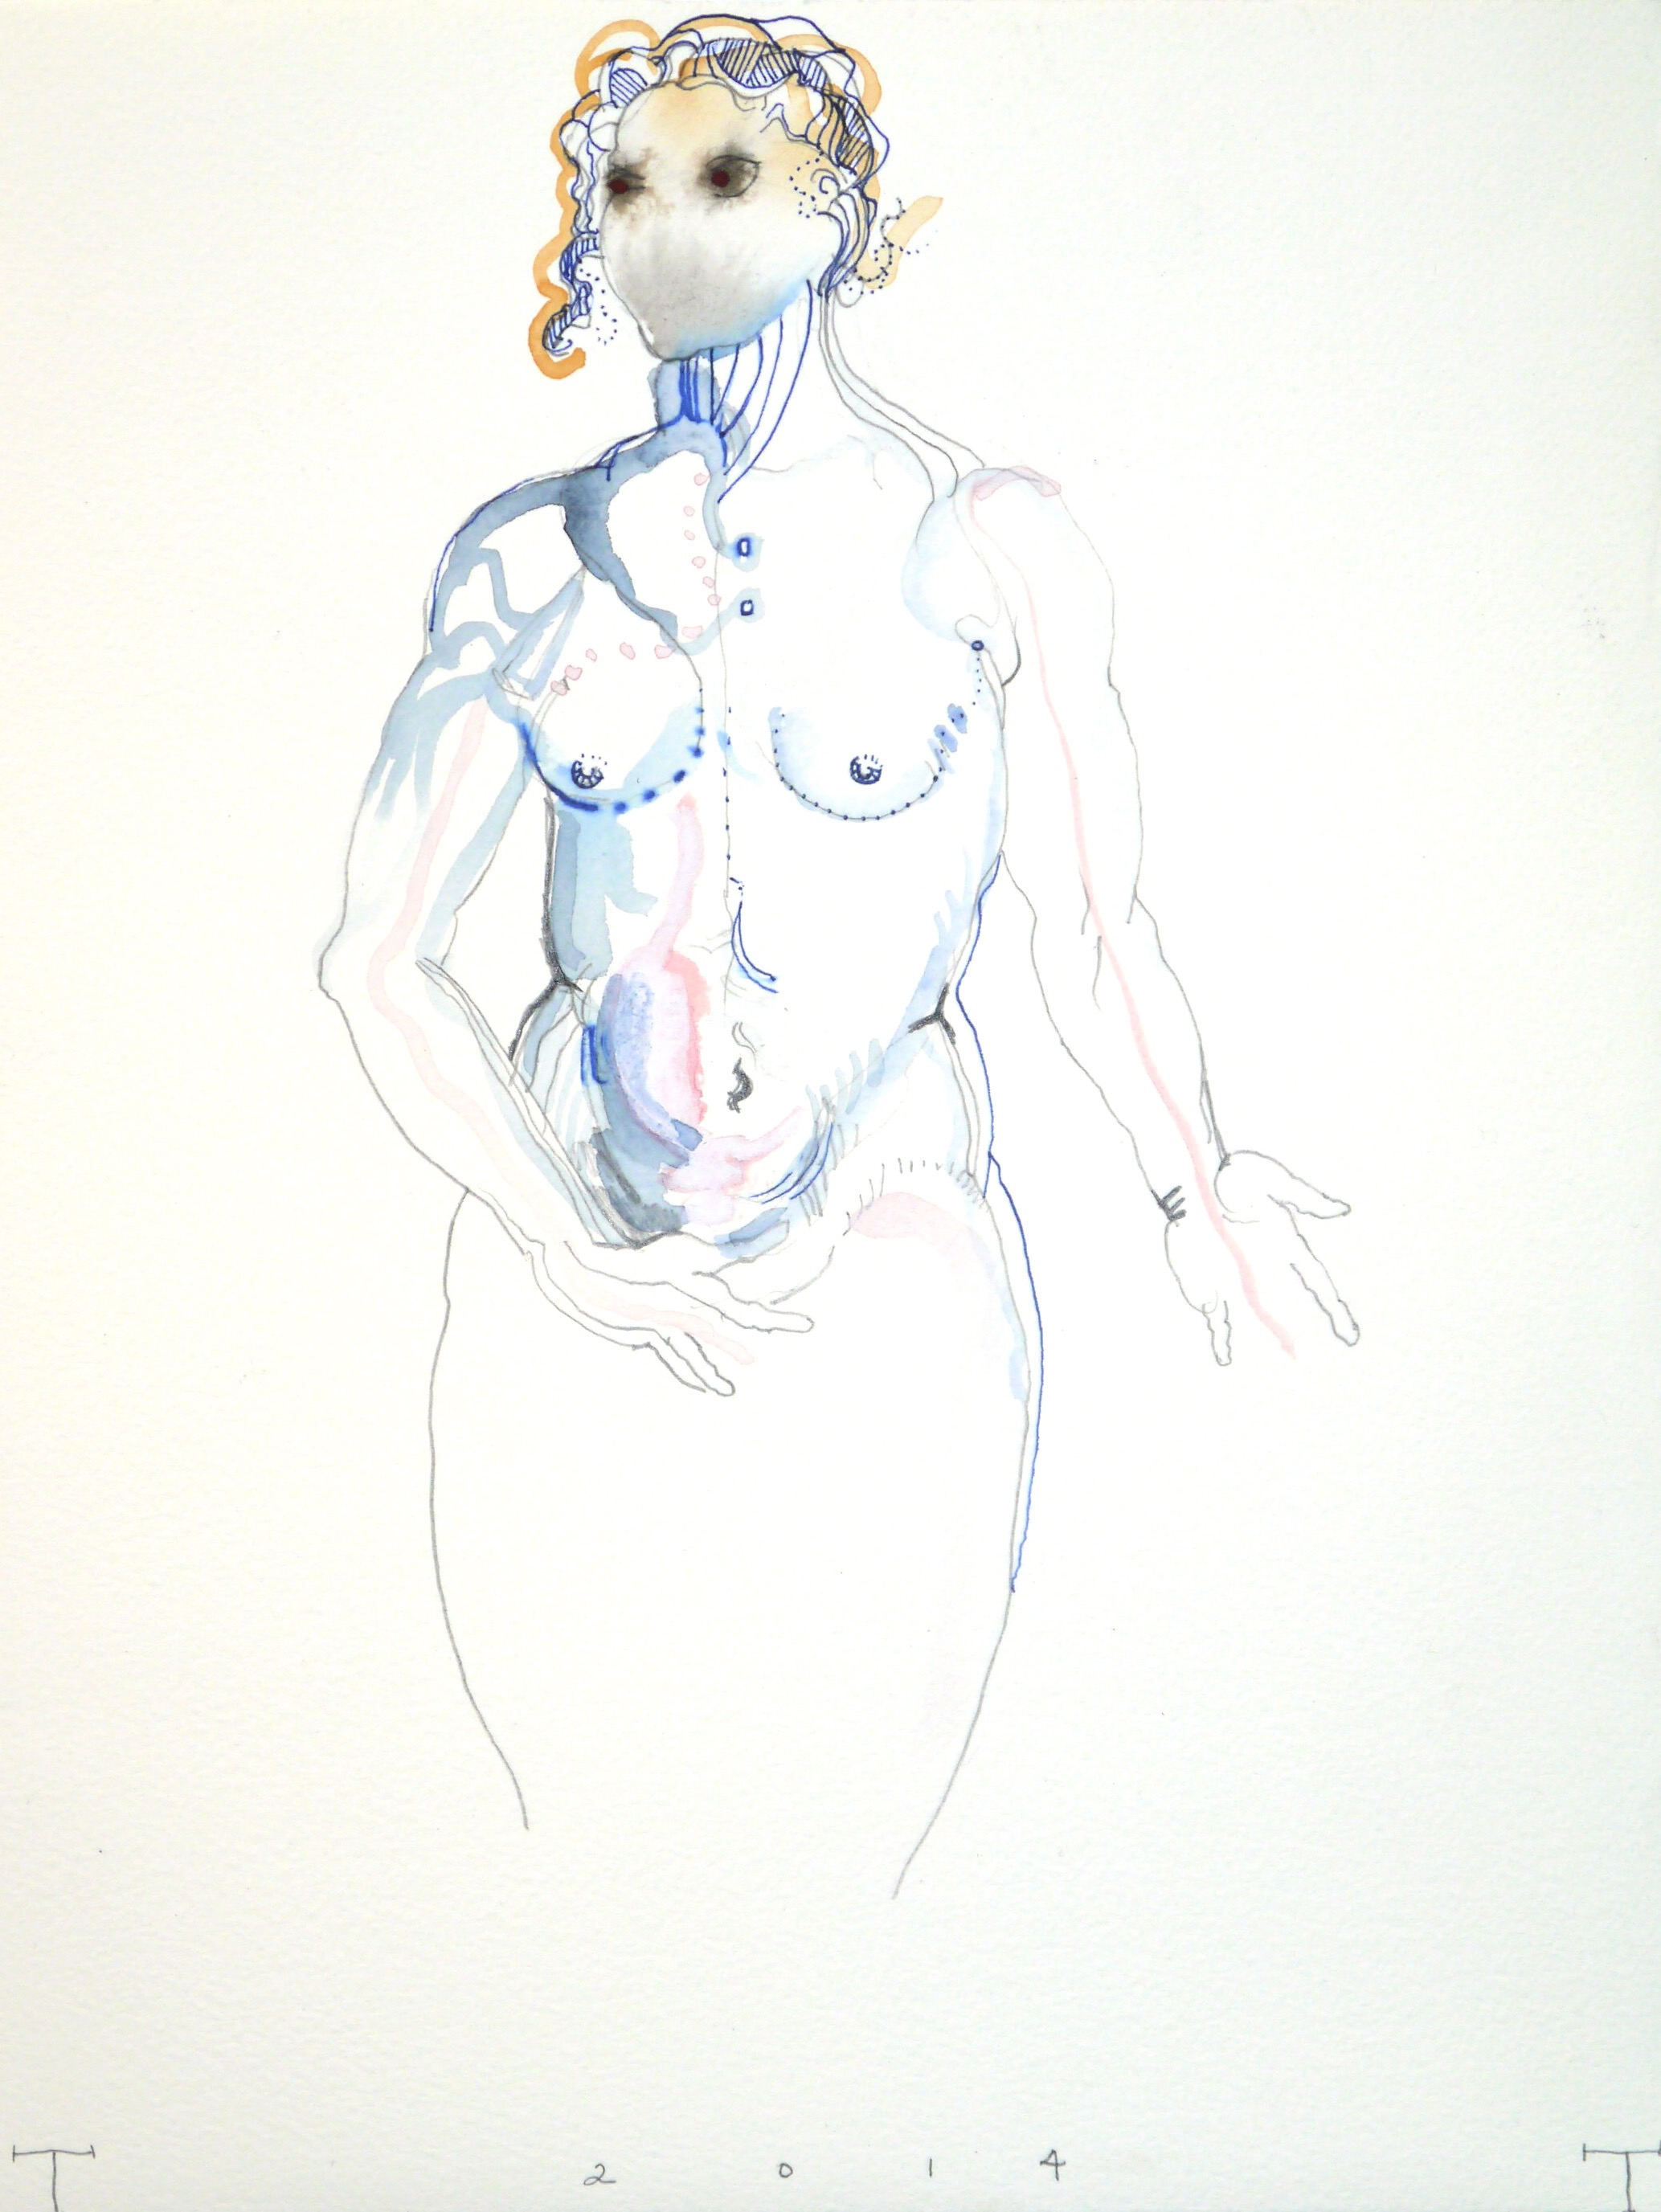 Vesalius study, mixed media on paper, 33 X 25 cm, 2014